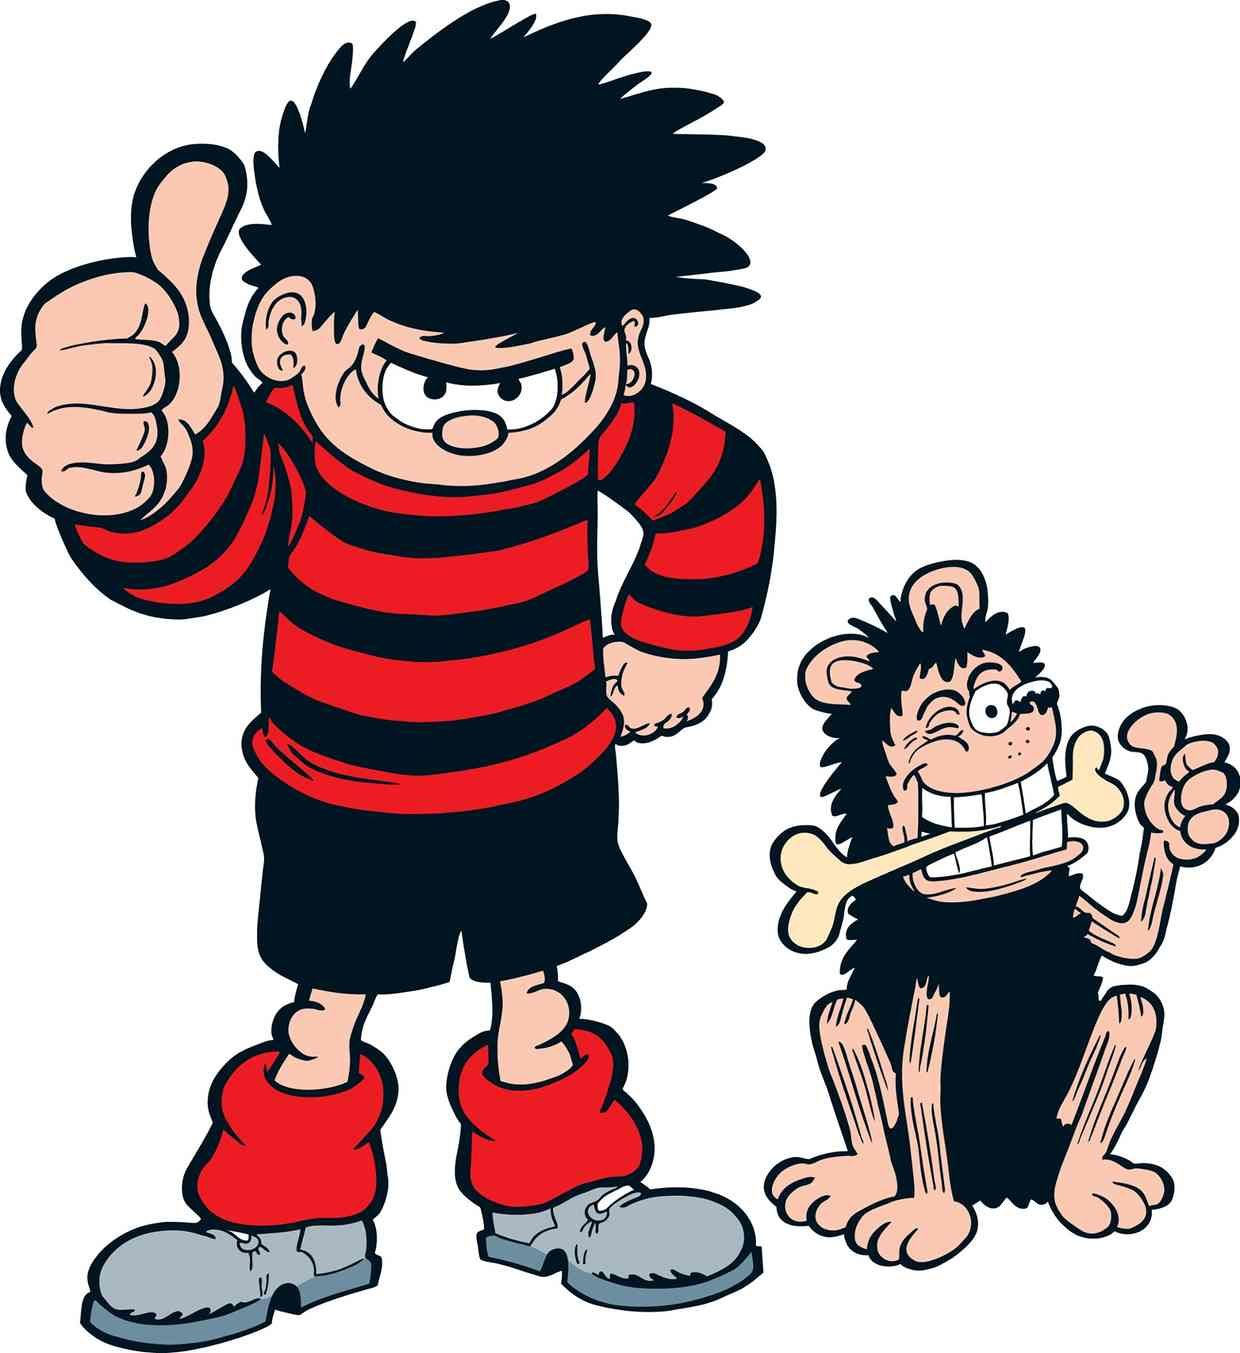 Dennis the Menace Wish I Was Book